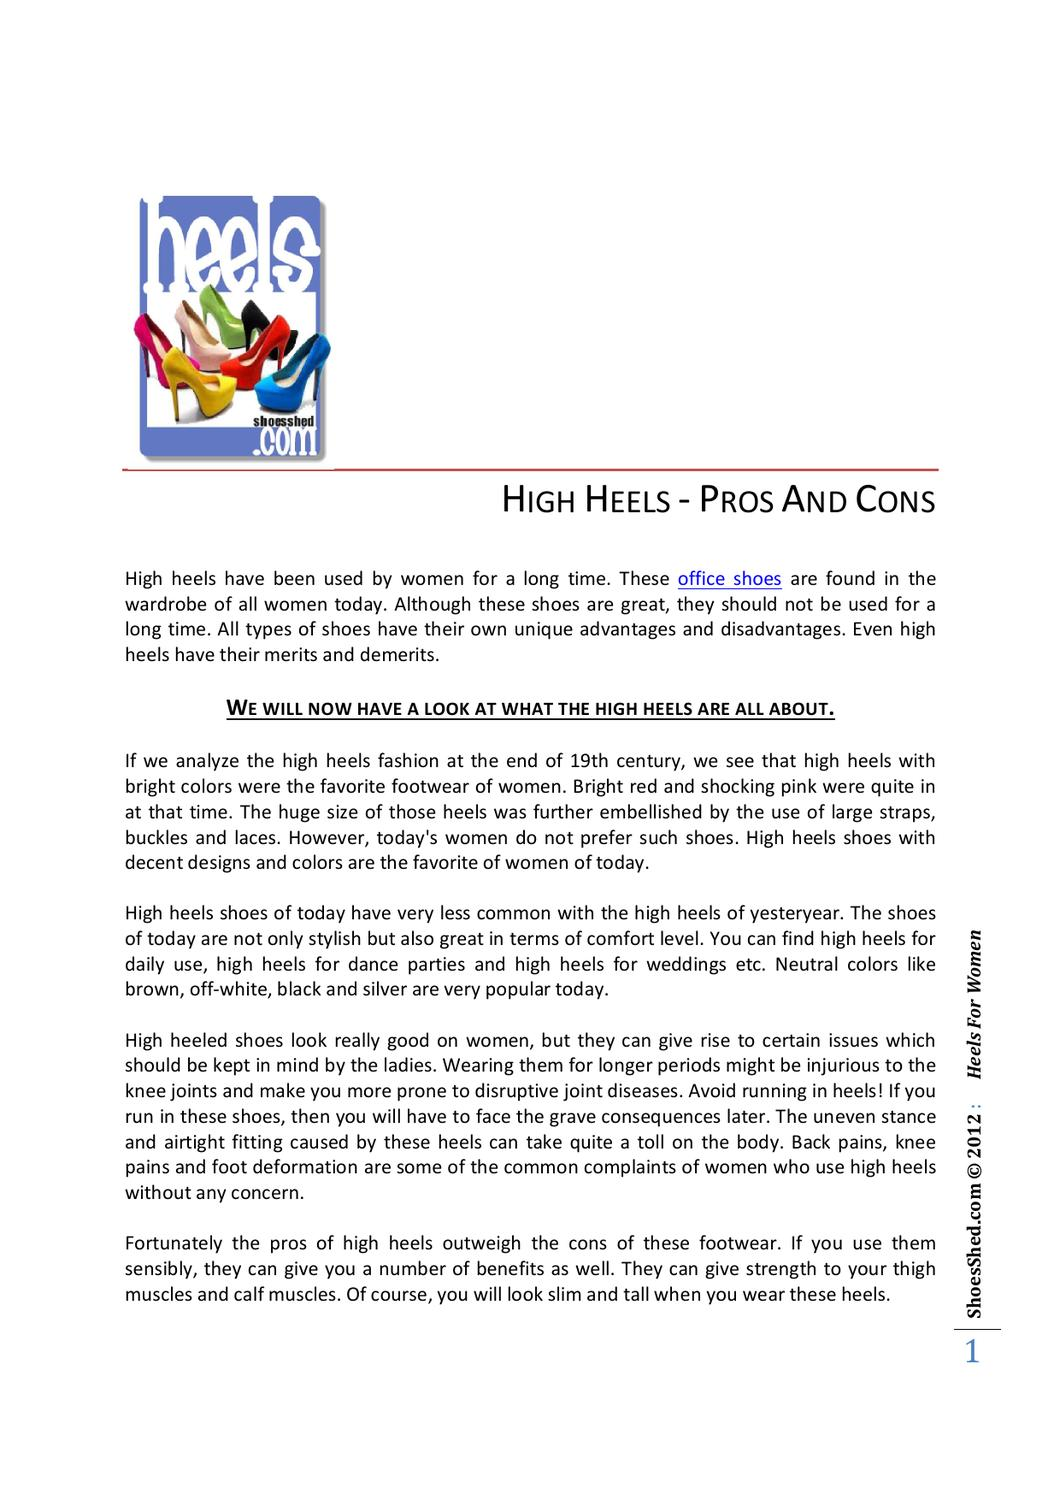 HIGH HEELS - PROS AND CONS by Roger Severson - issuu